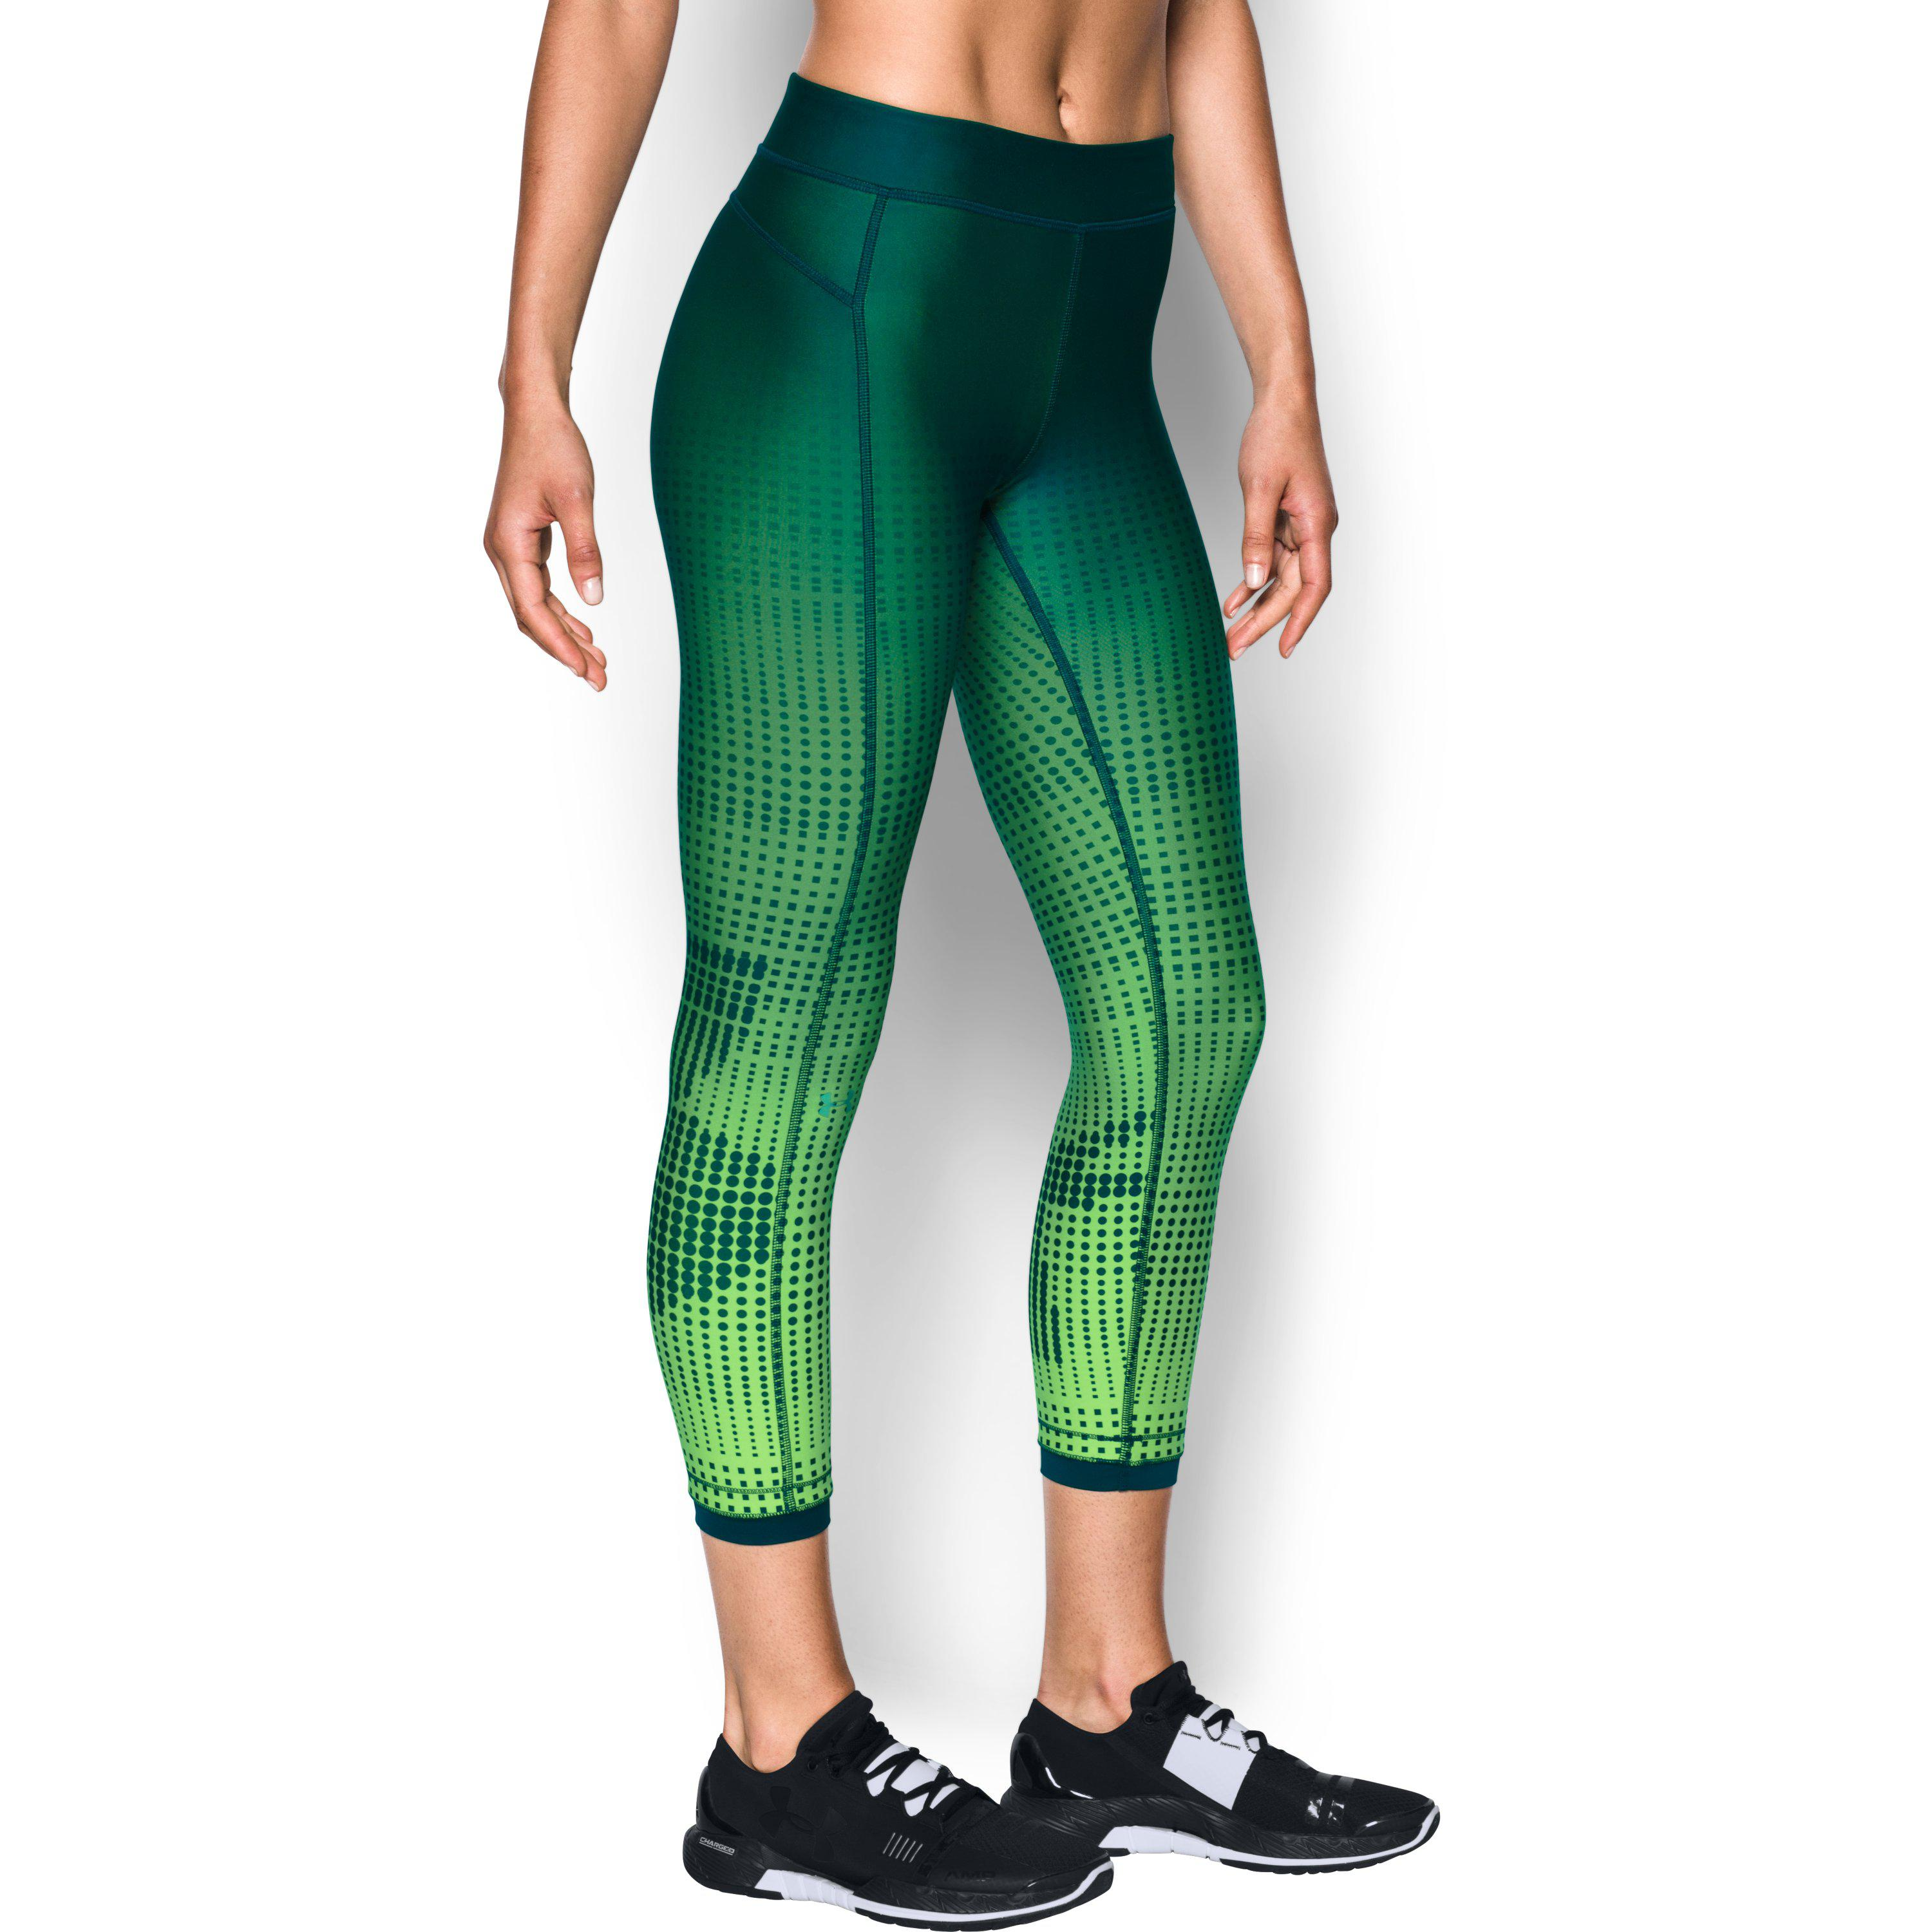 3c34083ef96 Under Armour Women's Heatgear® Armour Graphic Ankle Crop in Green - Lyst